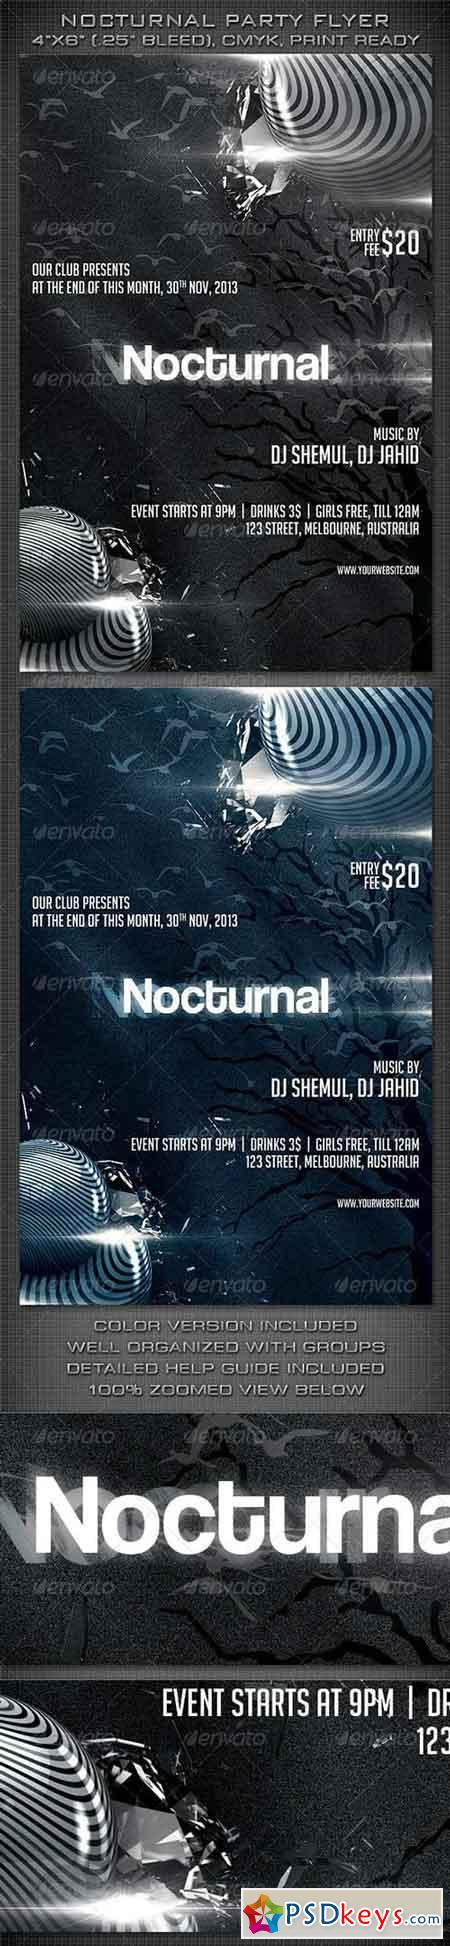 Nocturnal Party Flyer 6045694